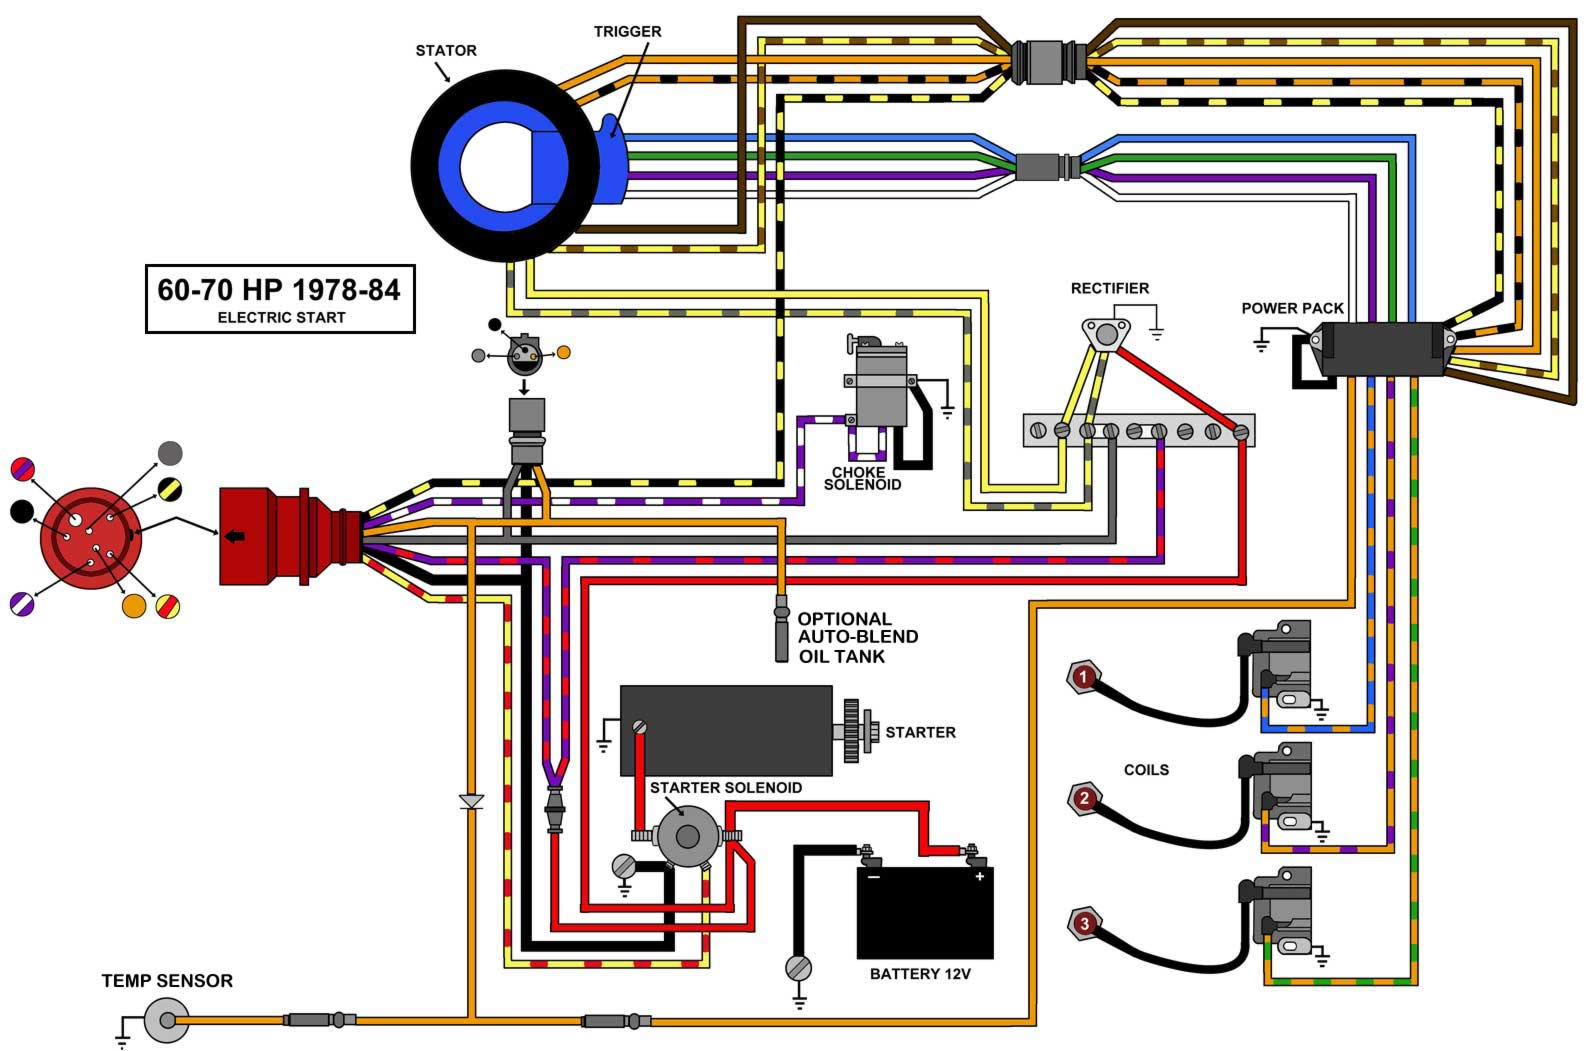 78 84_3 CYL_EL wiring tach from johnson controls page 1 iboats boating forums omc wiring harness diagram at gsmx.co